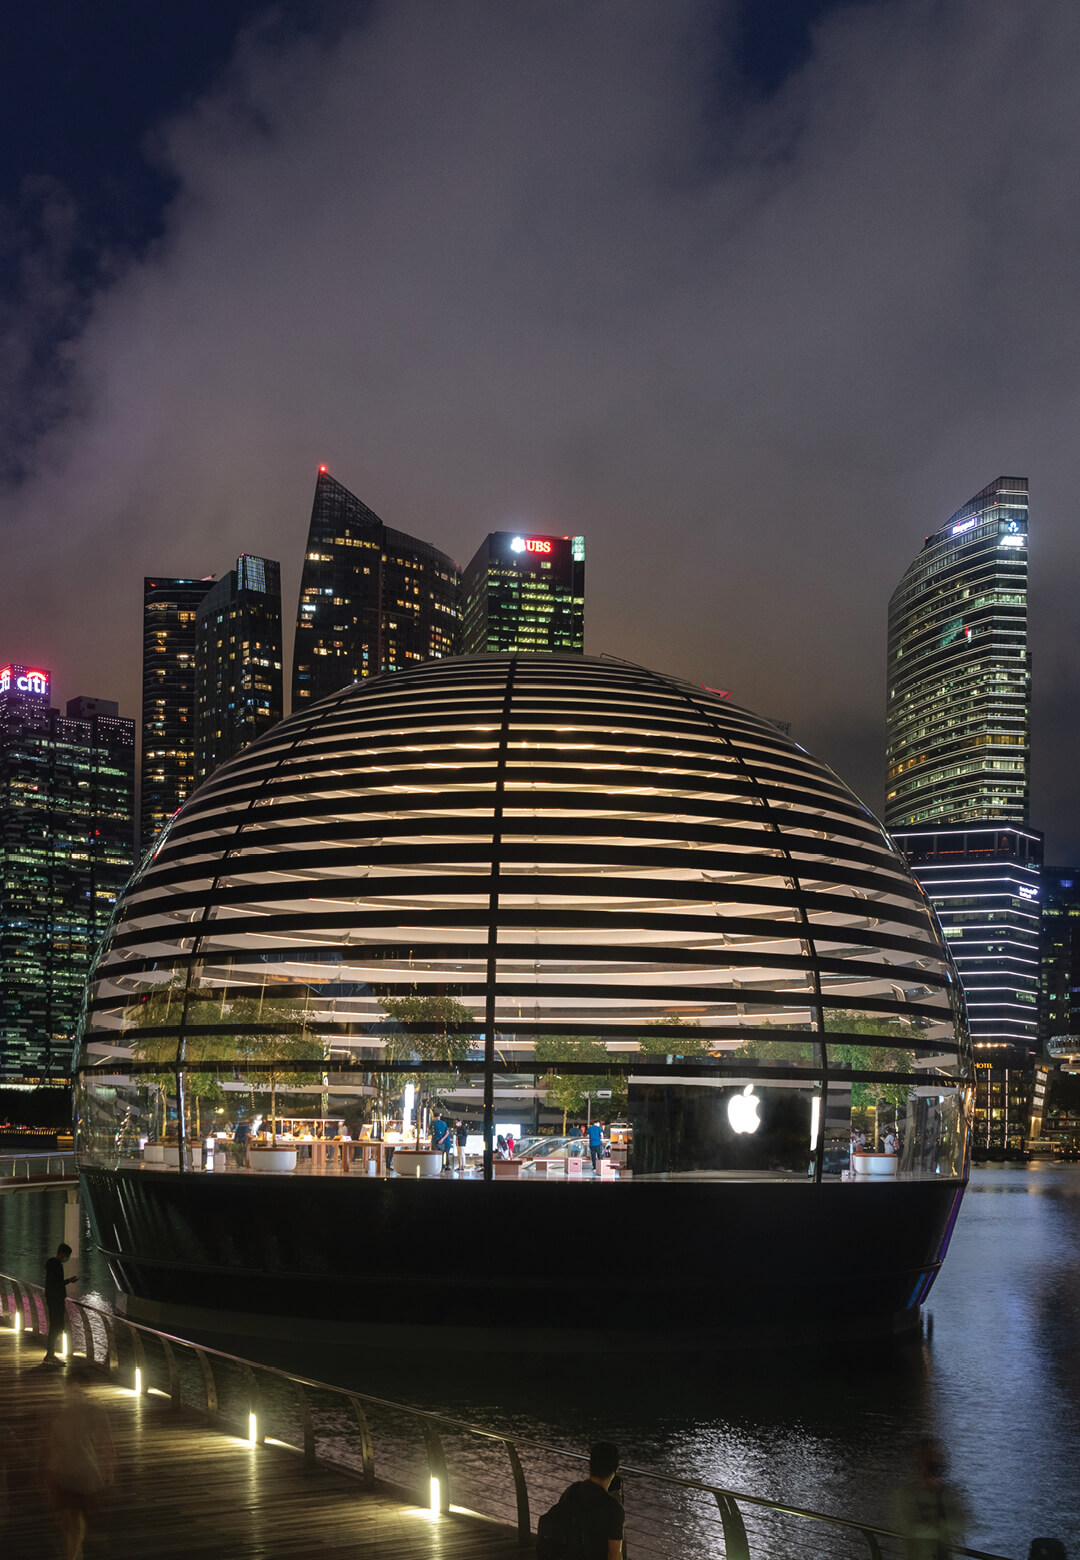 The new Apple store in Singapore floats on the waters of Marina Bay | Apple Marina Bay Sands by Foster + Partners | STIRworld